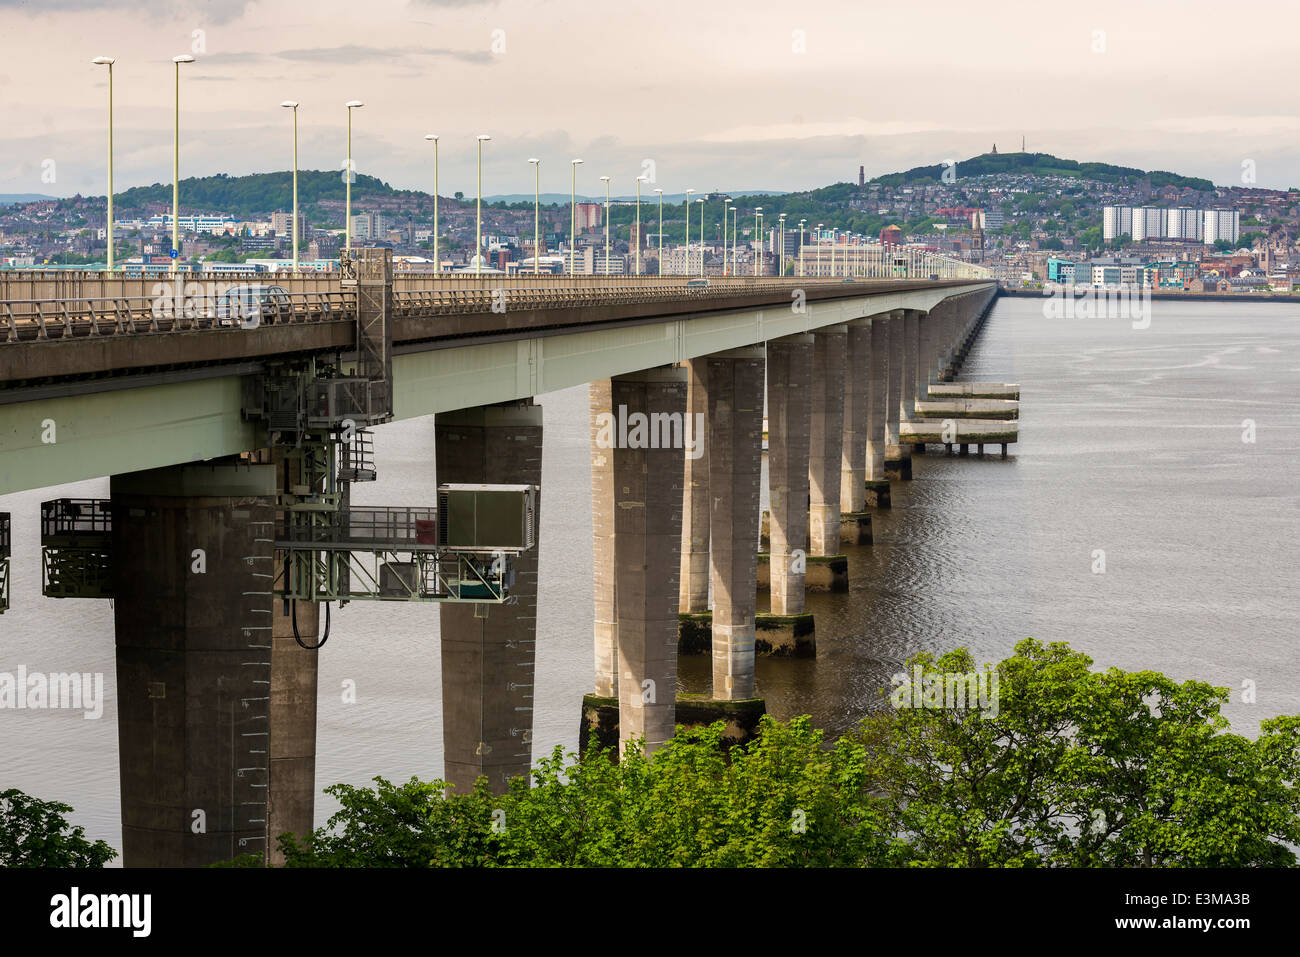 Tay road bridge with Dundee on the far bank. - Stock Image